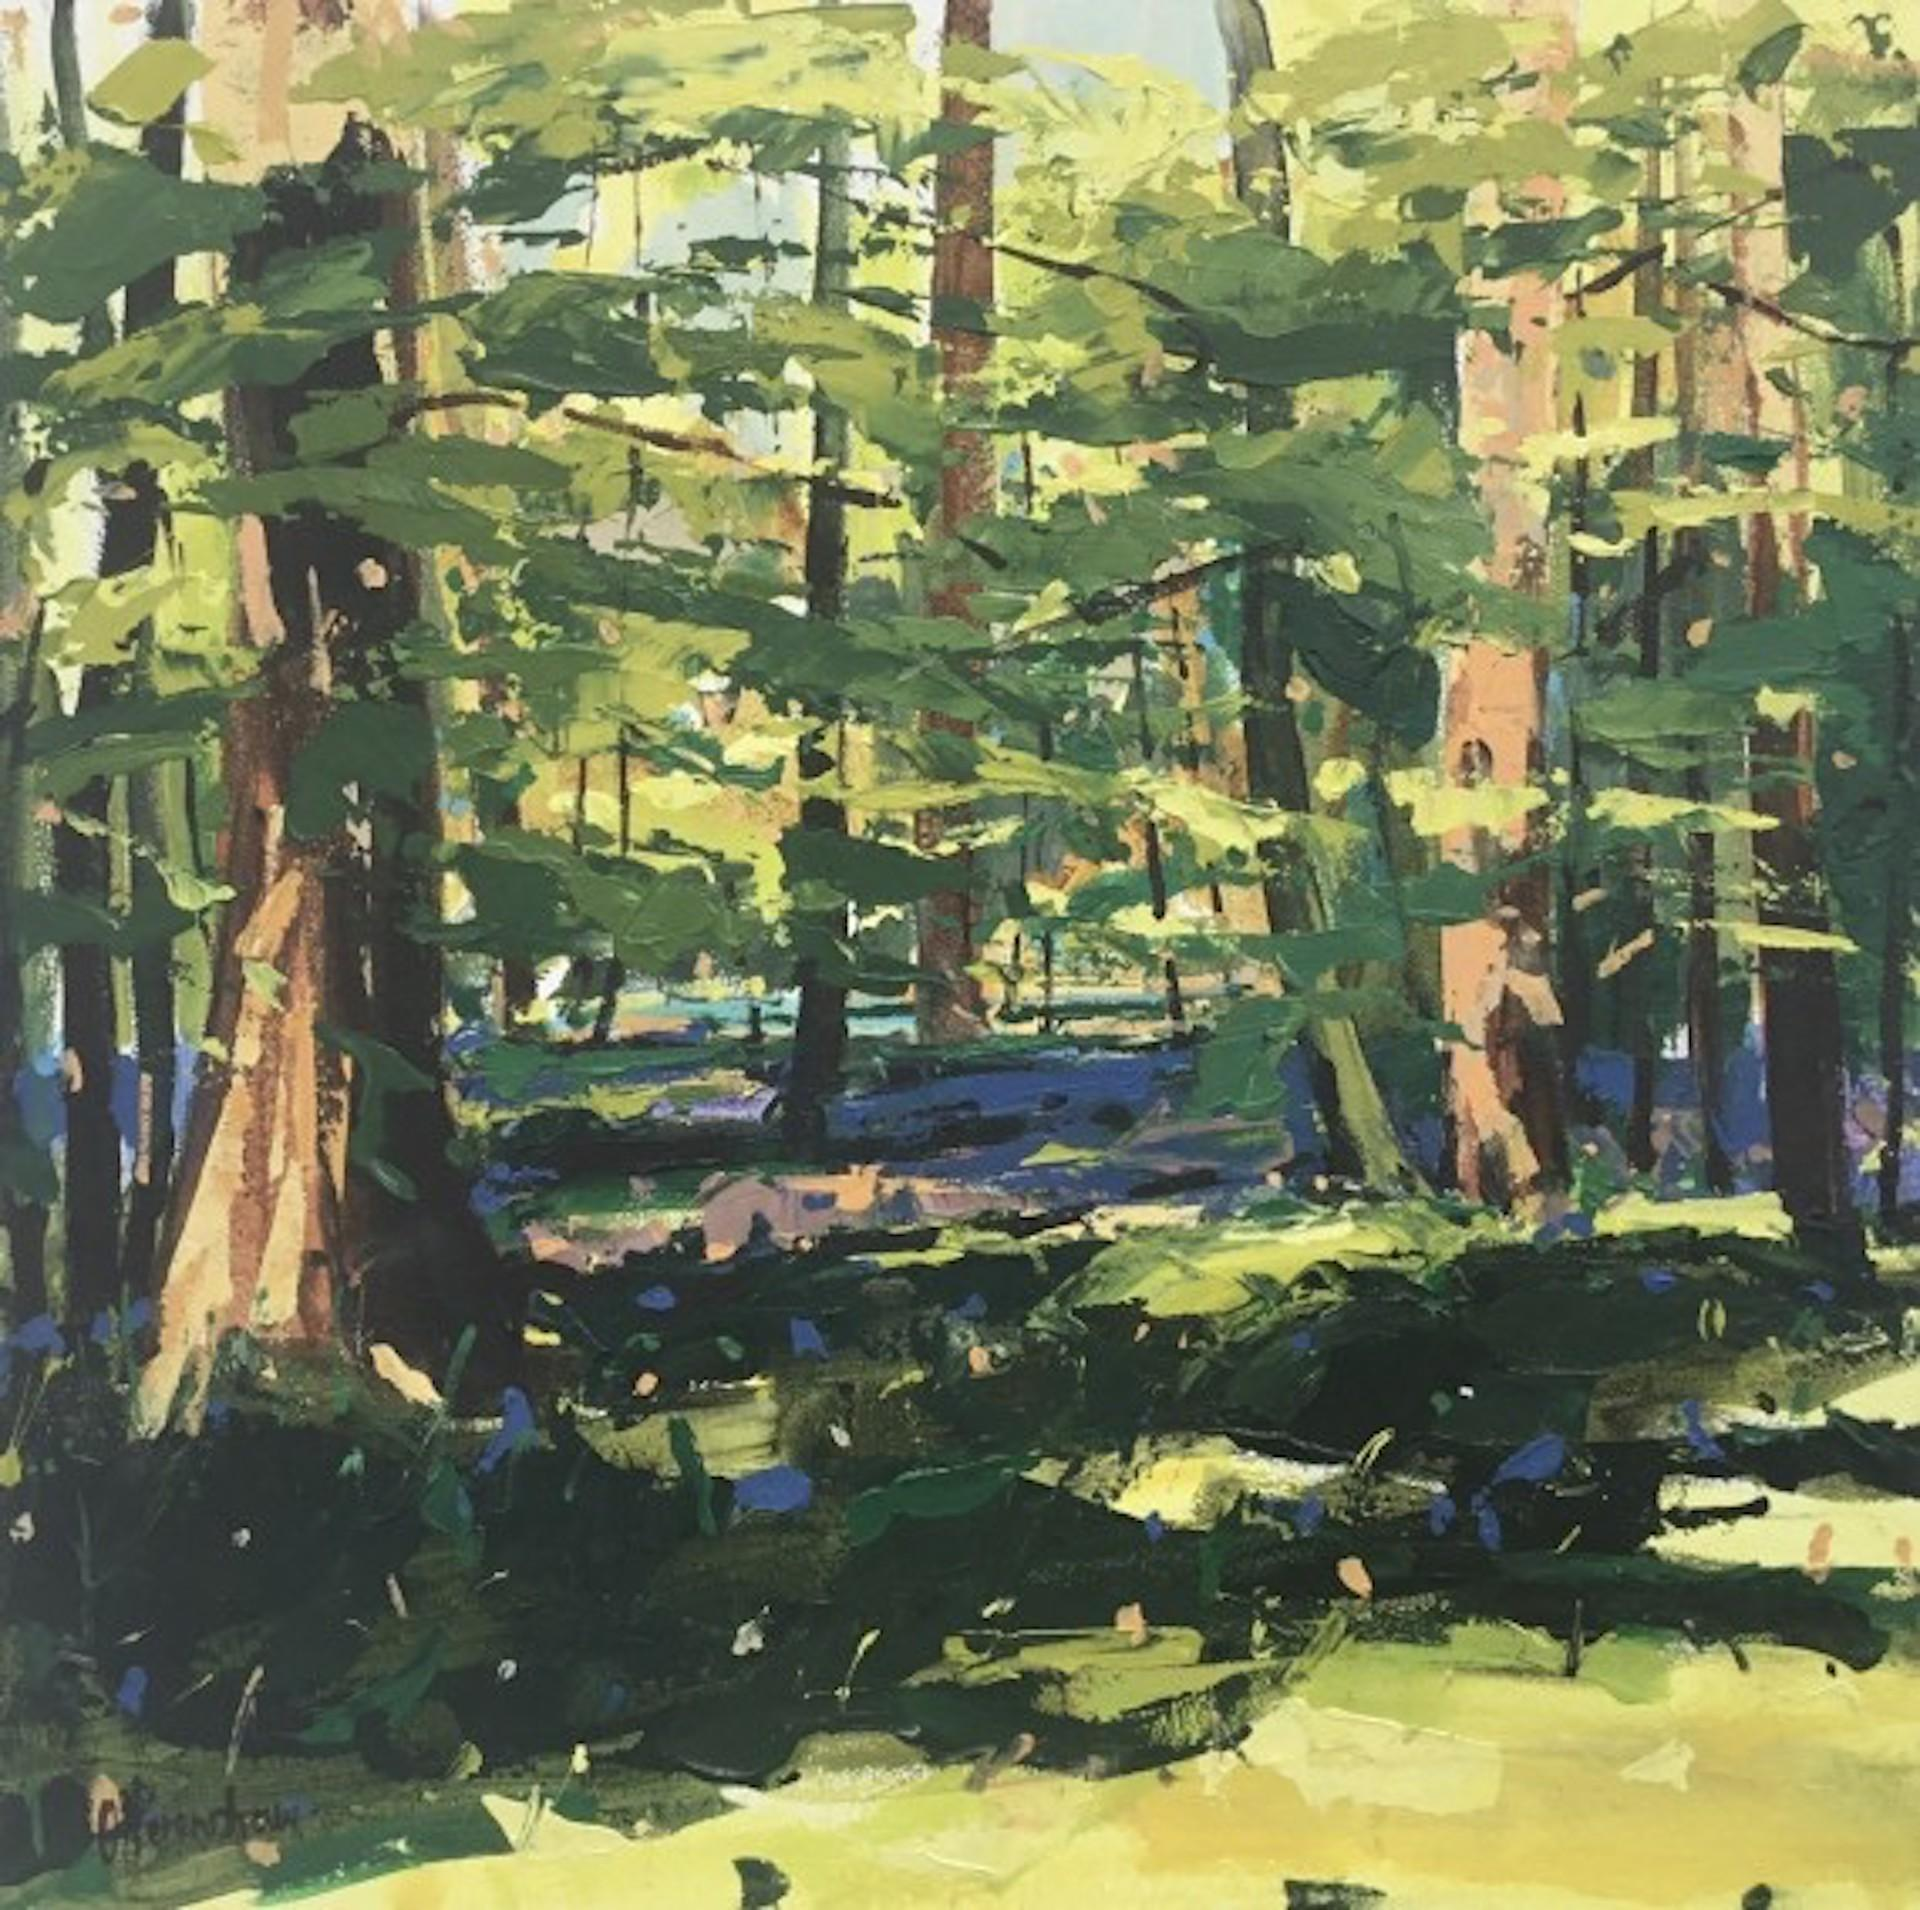 Sarah Ollerenshaw, I Held You in My Heart, Original Landscape Painting